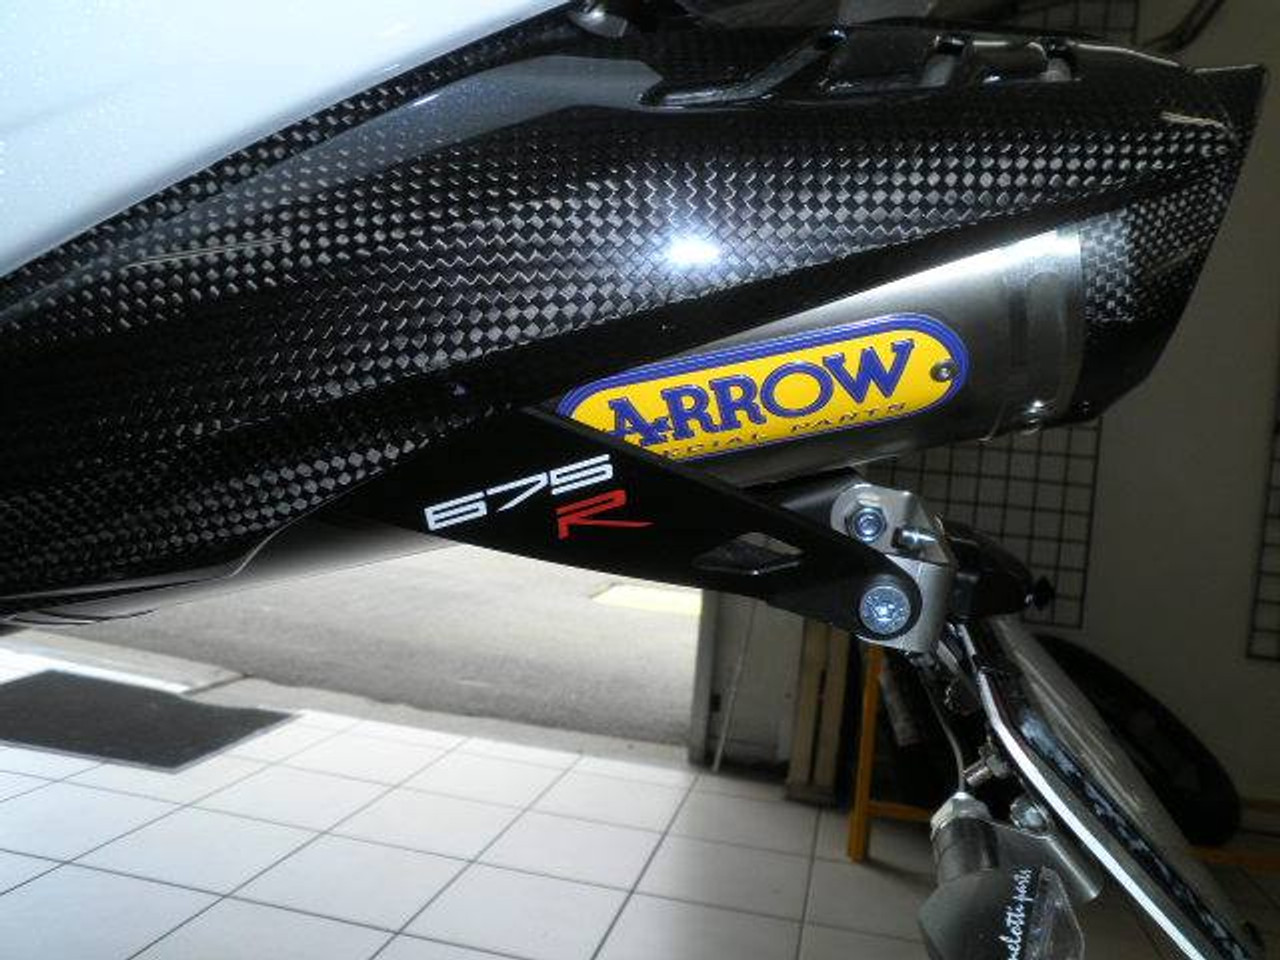 Melotti Racing Triumph DAYTONA 675 (2006-2012),  Number Plate Holder, Tail Tidy, CNC Machined Motorcycle, Black, Made in Italy